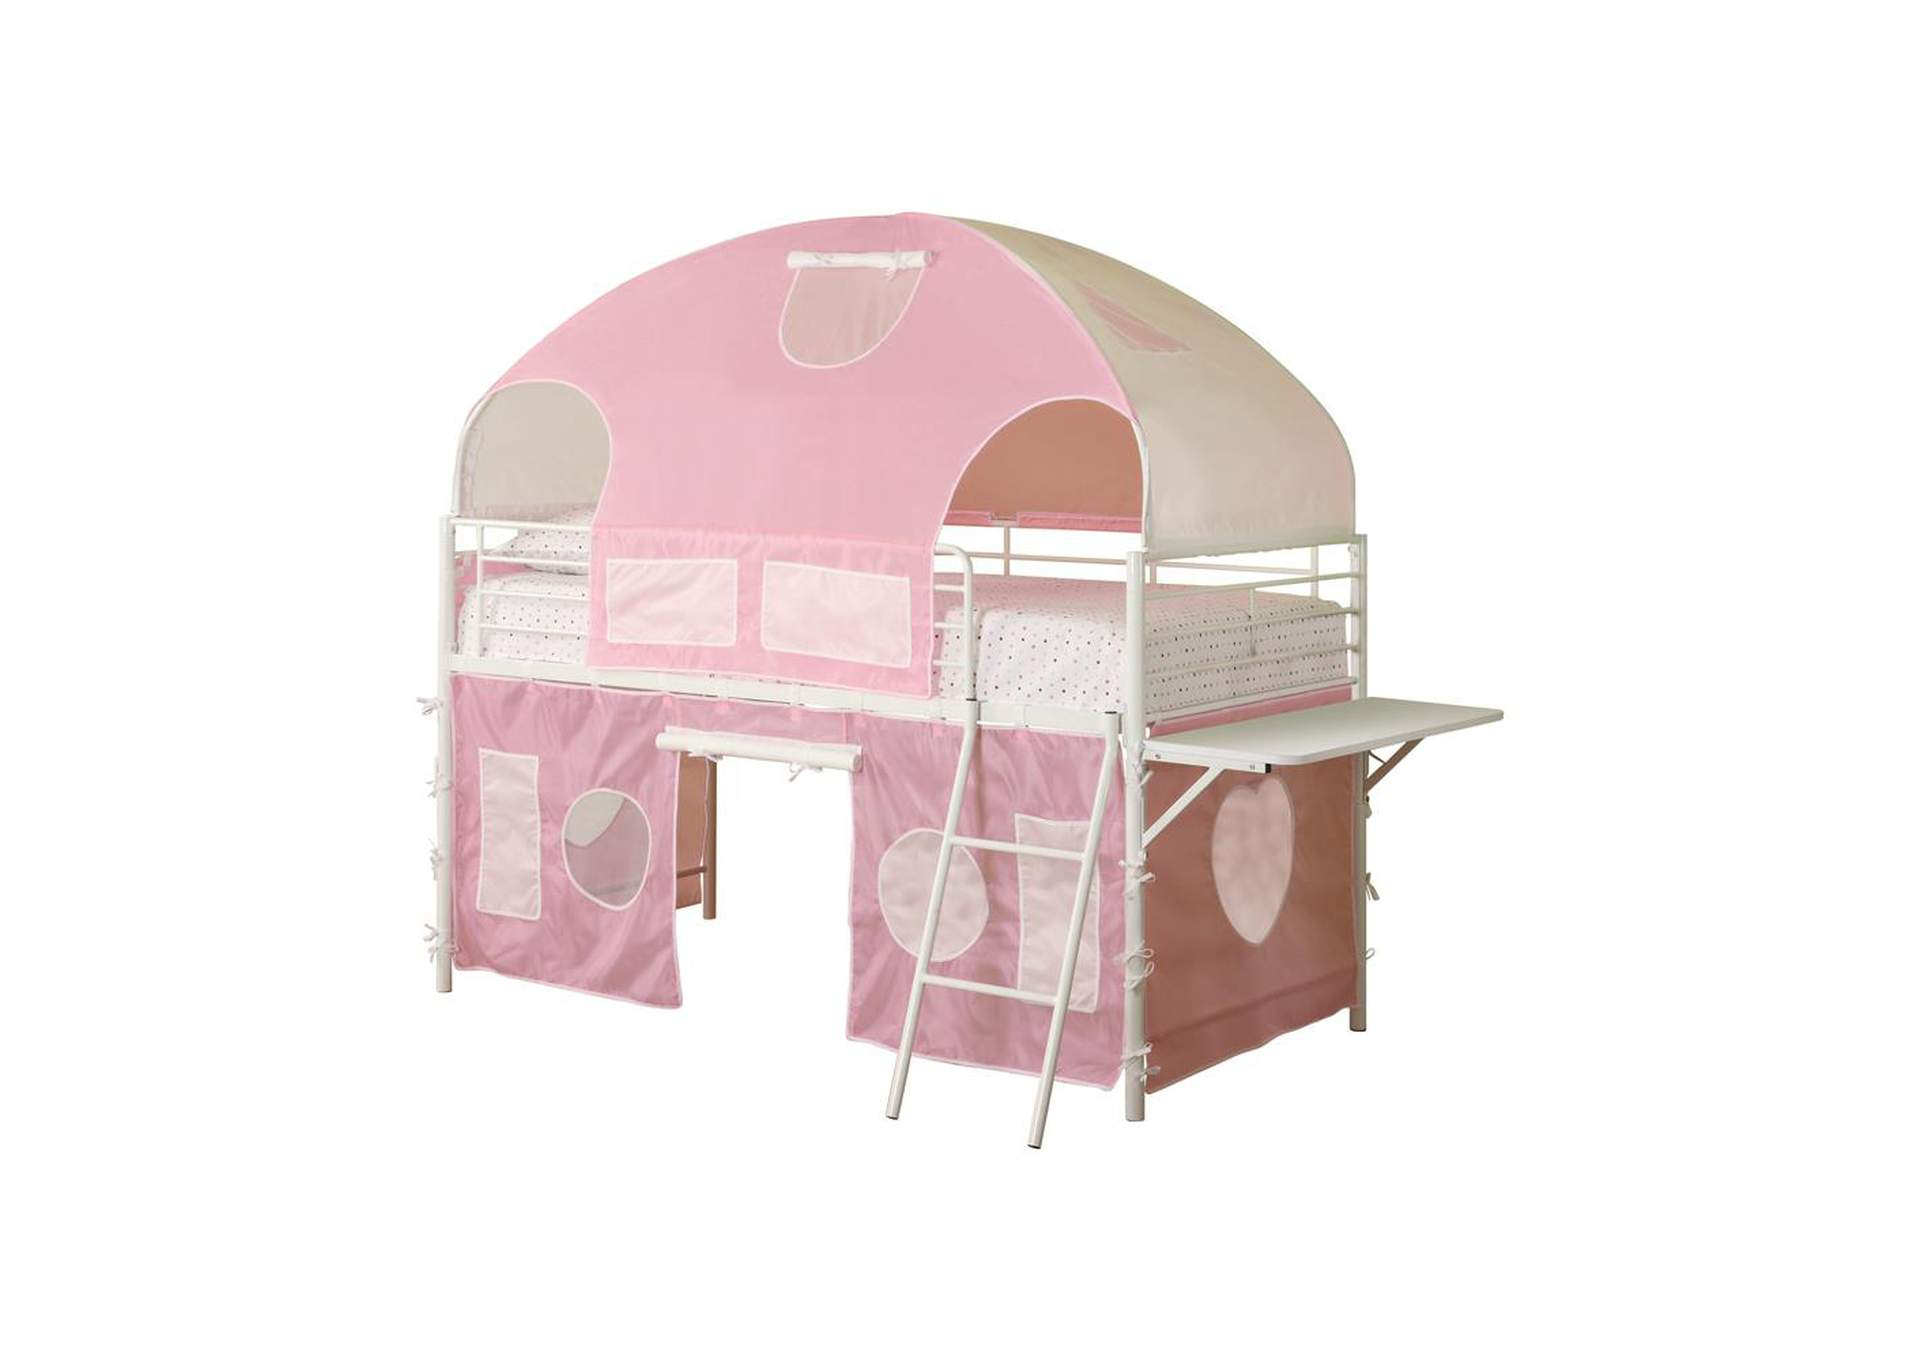 Shilo White and Pink Tent Bunk Bed,Coaster Furniture